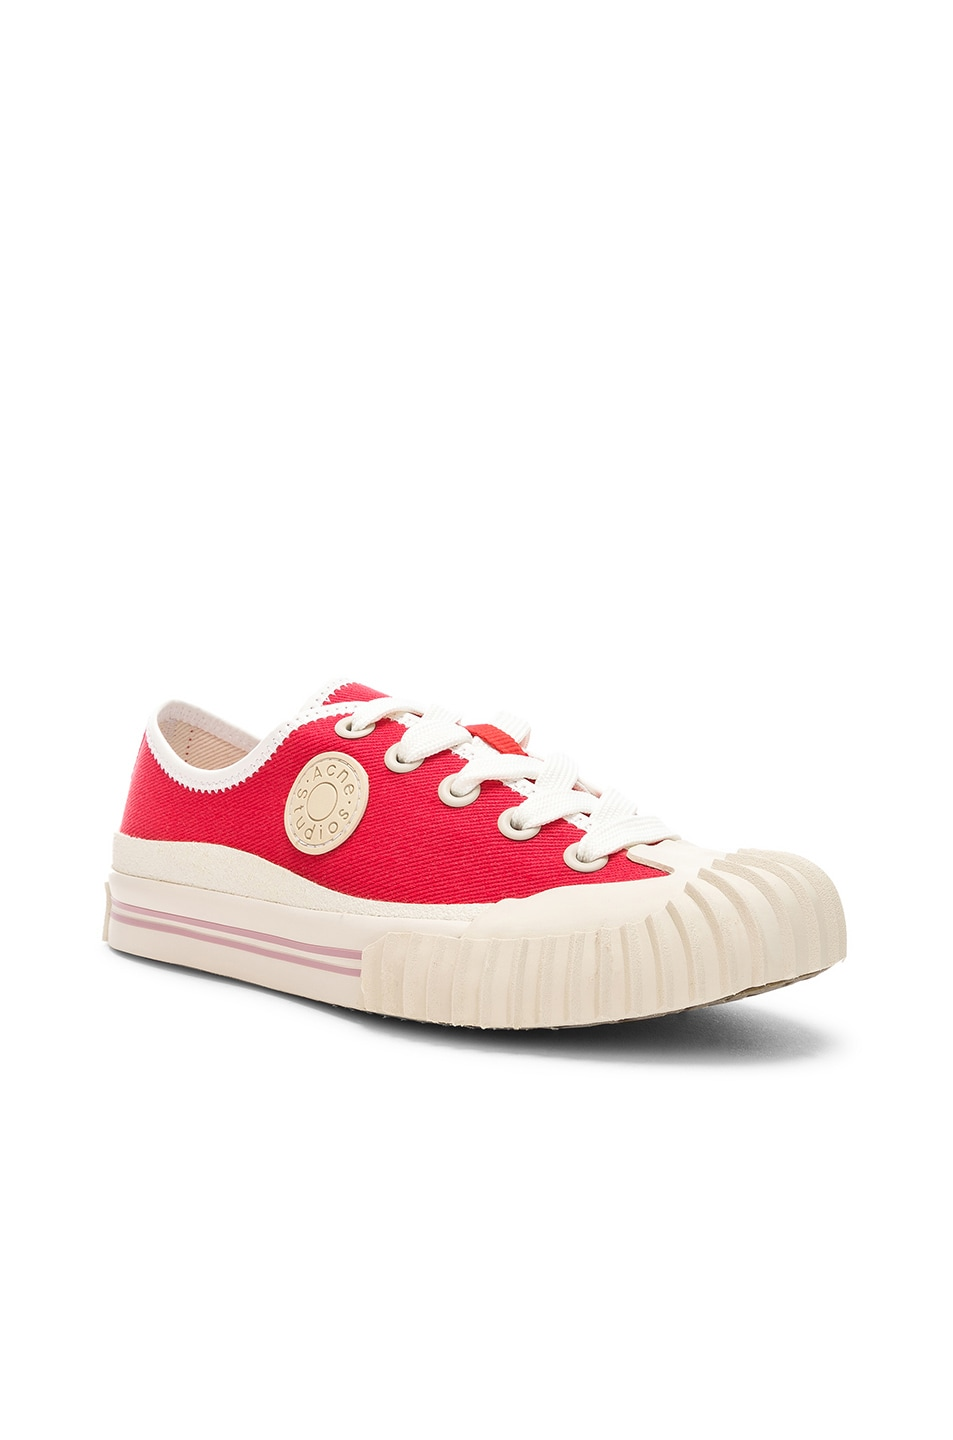 Image 2 of Acne Studios x Bla Konst Sneaker in Coral Red